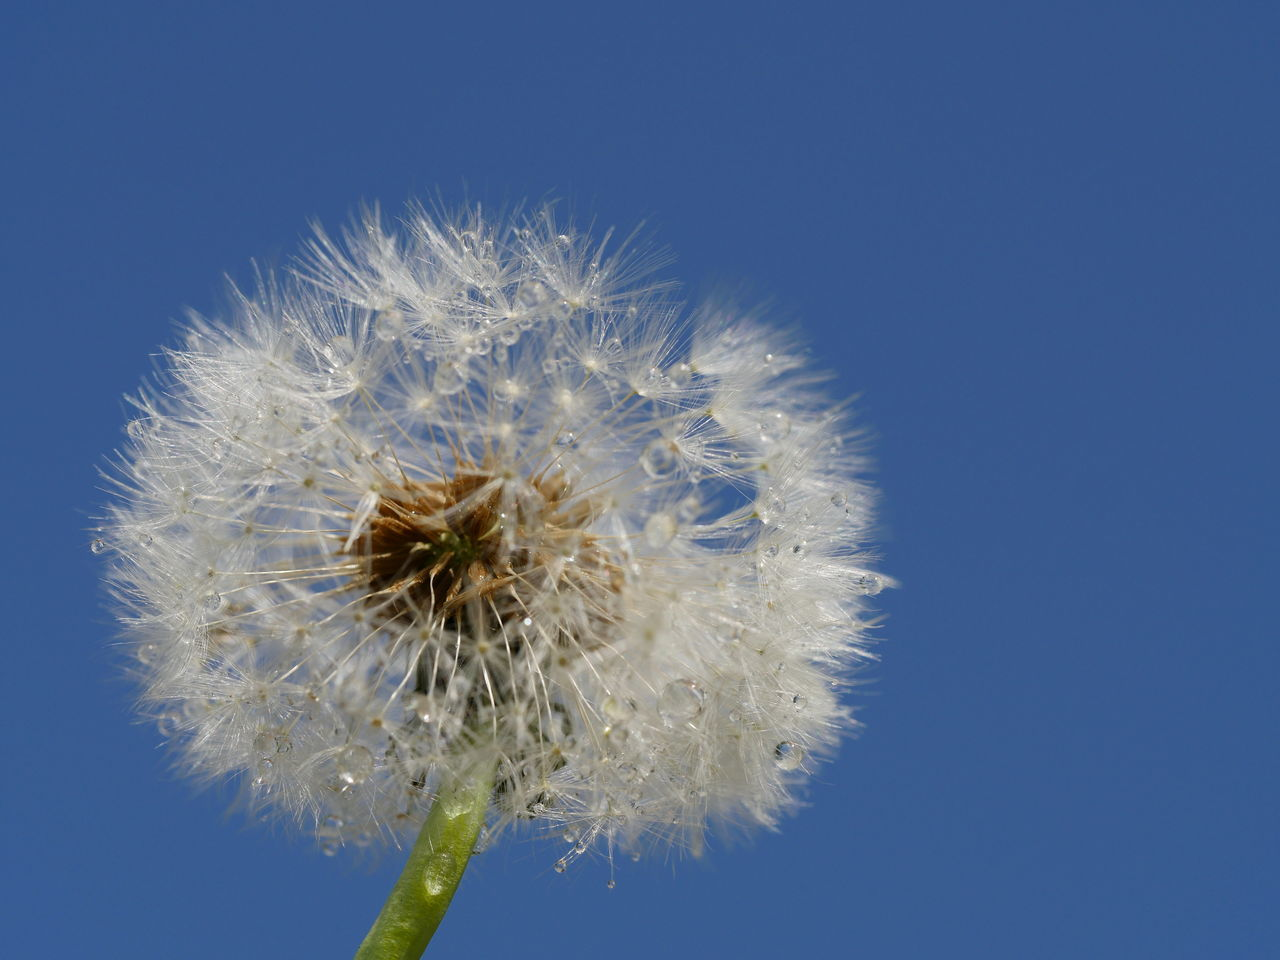 Blue Clear Sky Dandelion Dandelion Seeds Droplets Drops Fragility Freshness Macro Nature No People Outdoors Perspective Softness